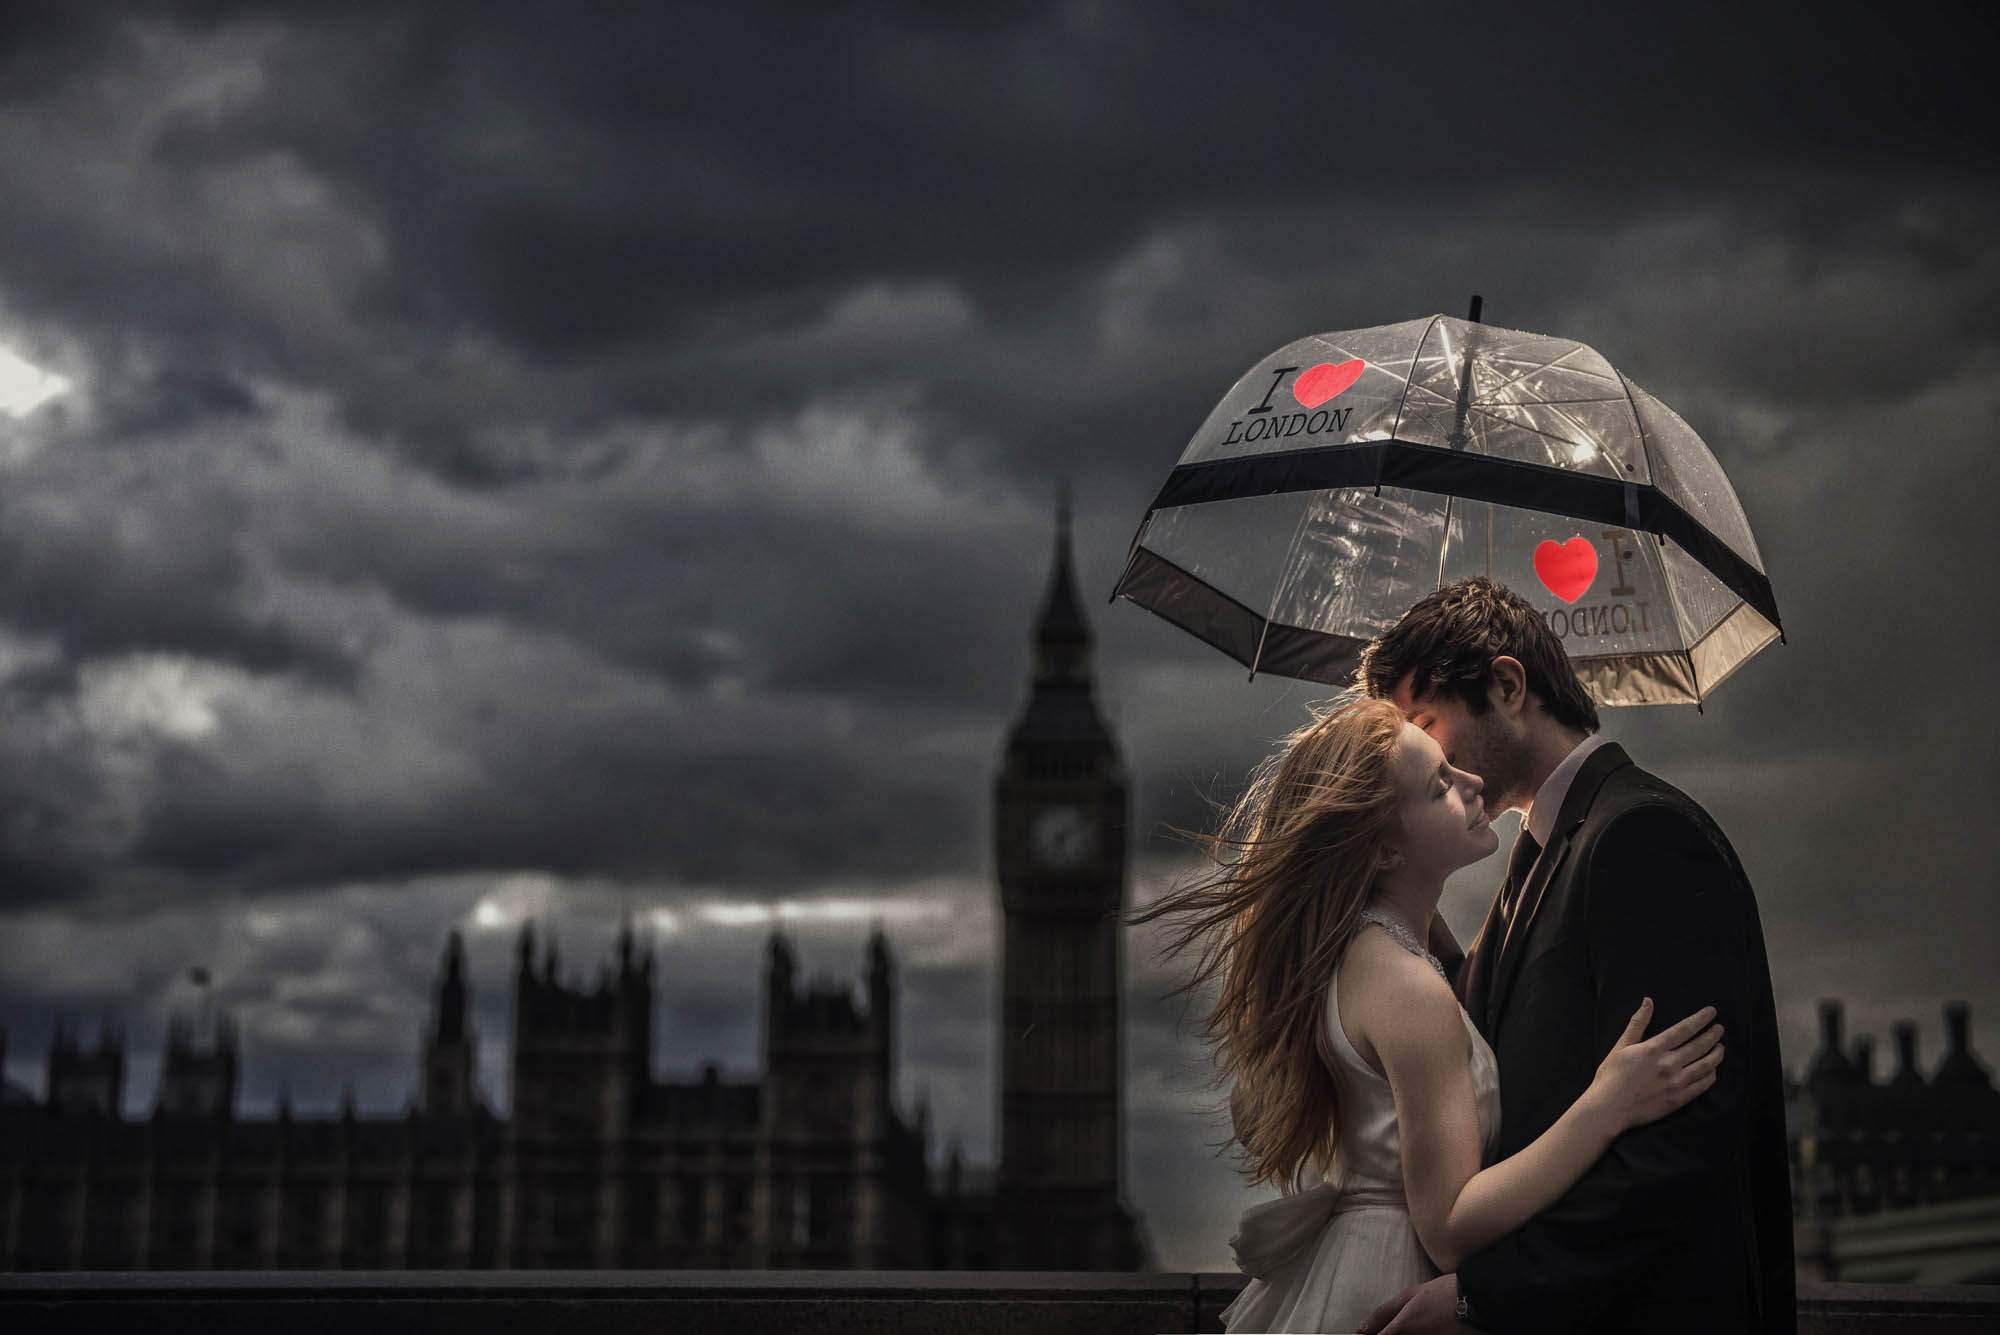 Bride and groom under I  Love London umbrella with Big Ben in background, by CM Leung